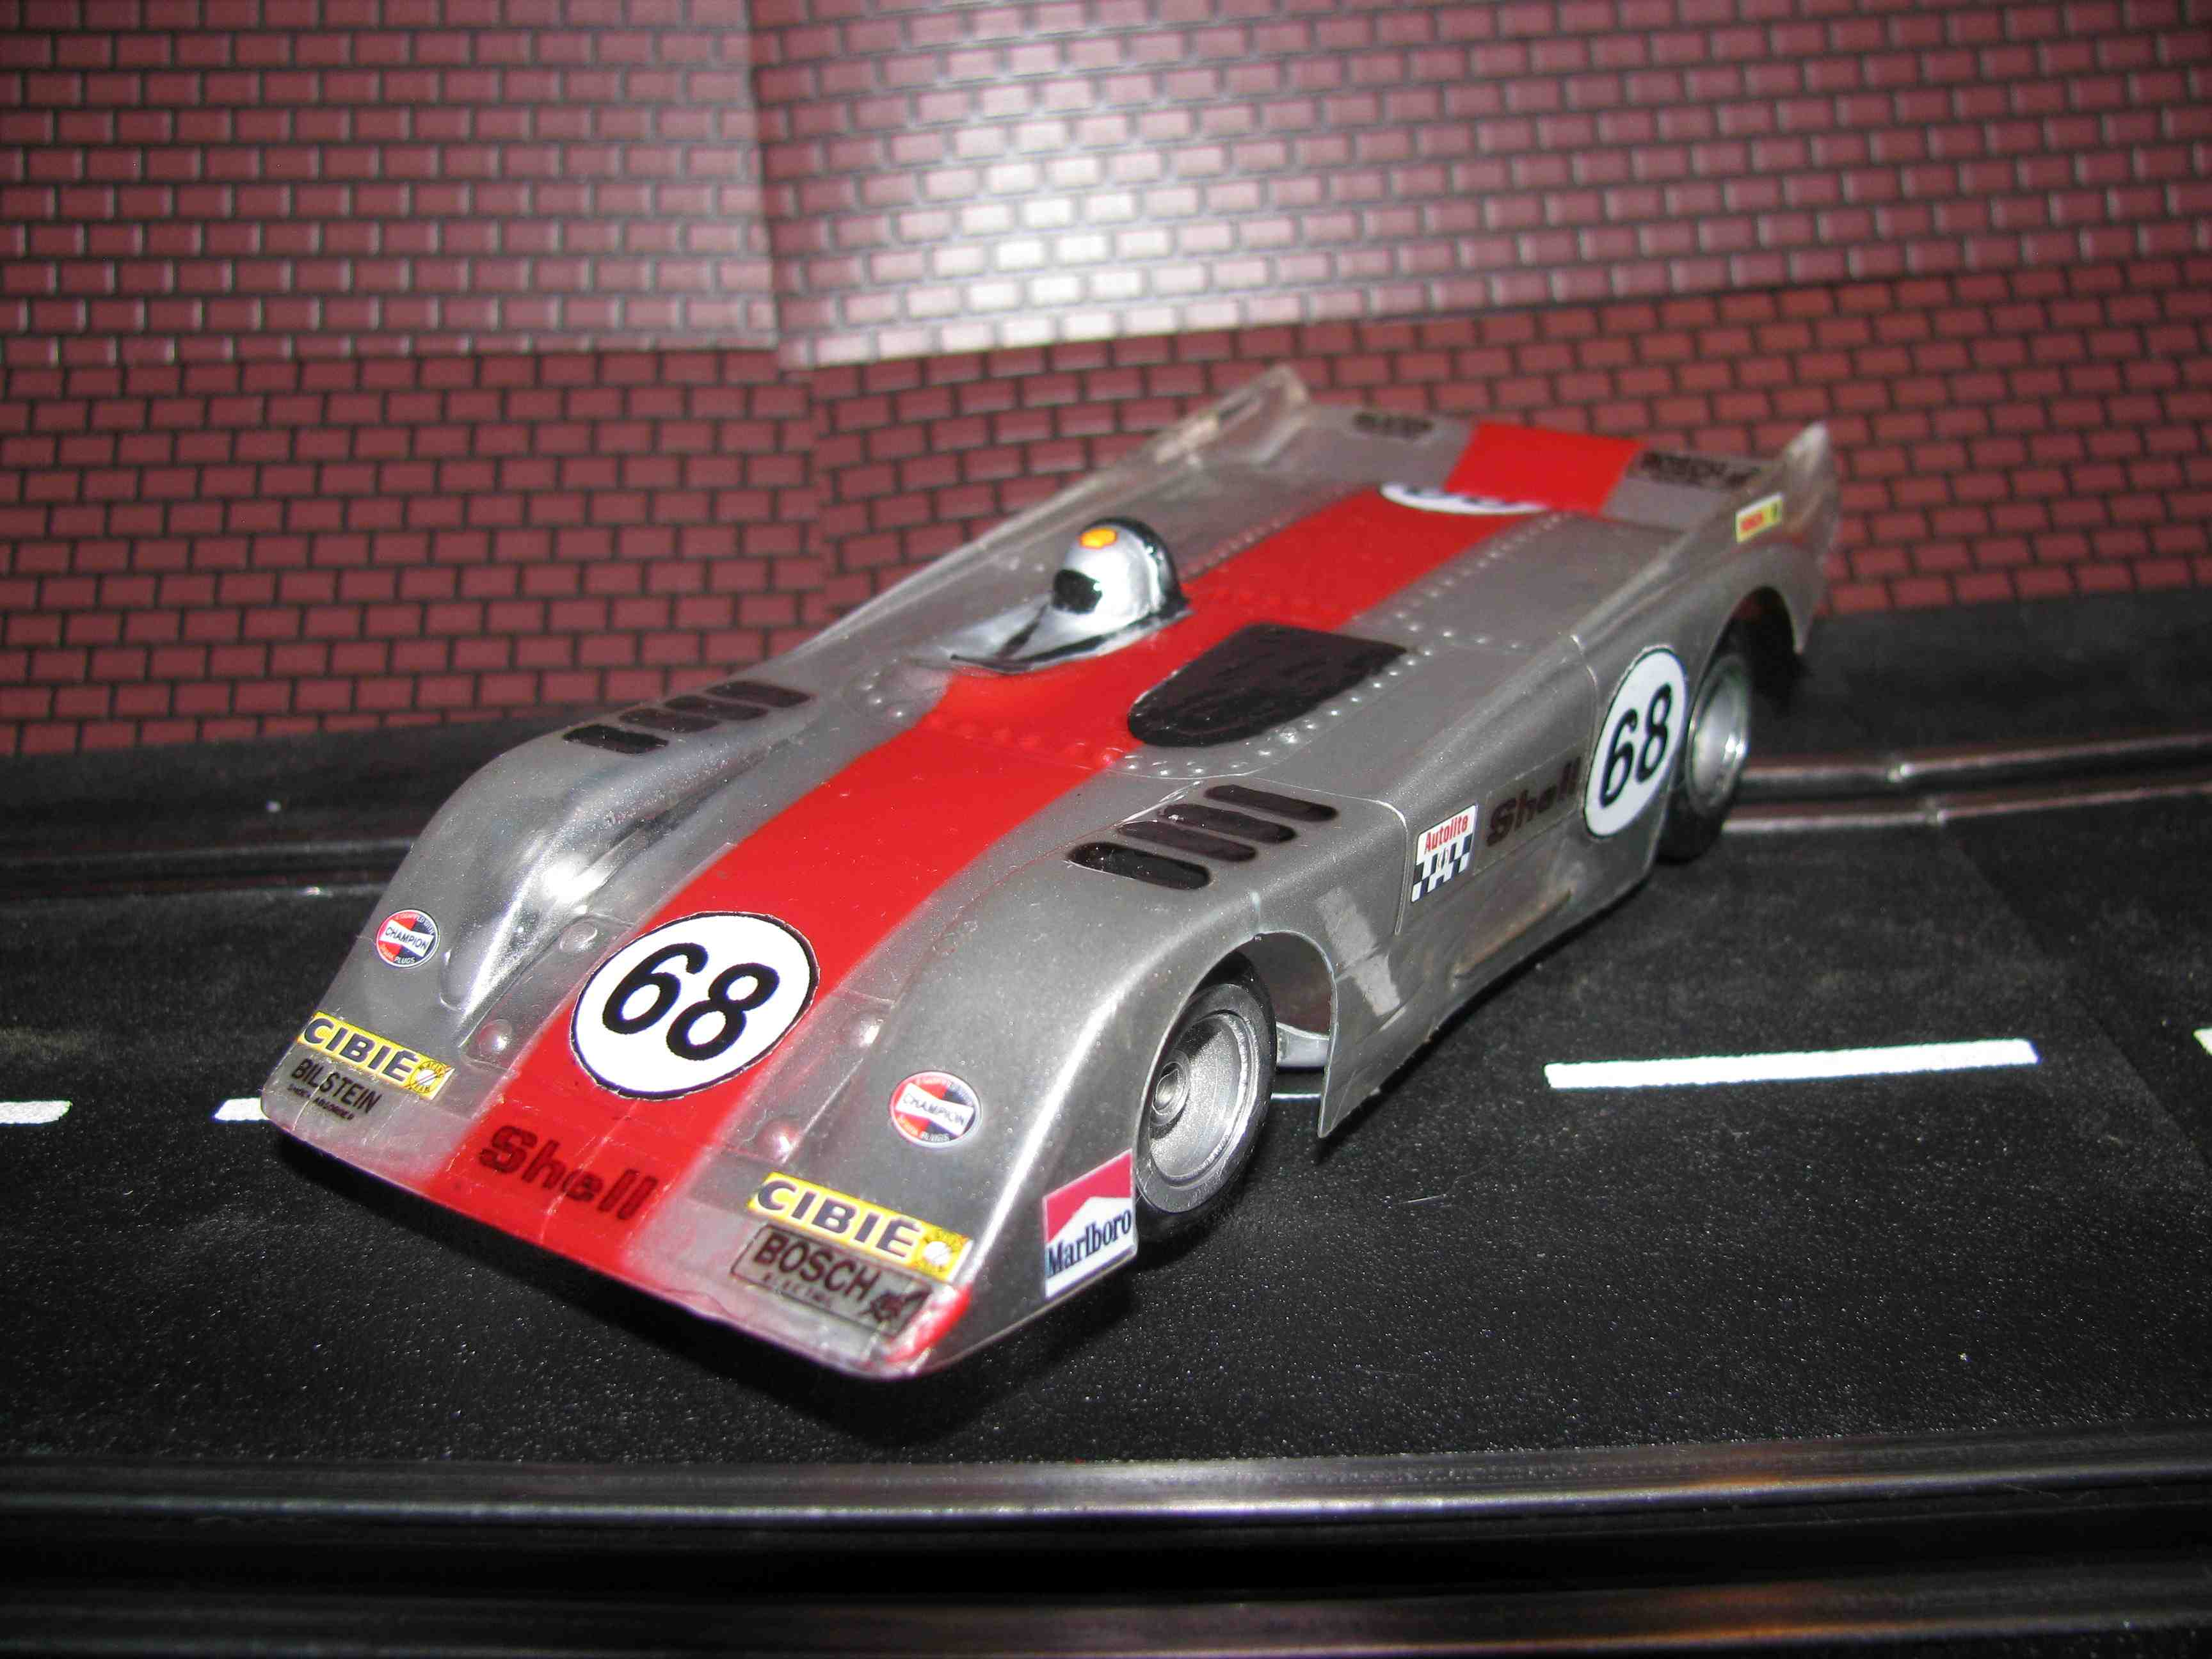 * SOLD * RIGGEN Vintage CANAM PRO-AM Slot Car in Silver with classic single red stripe – Car 68